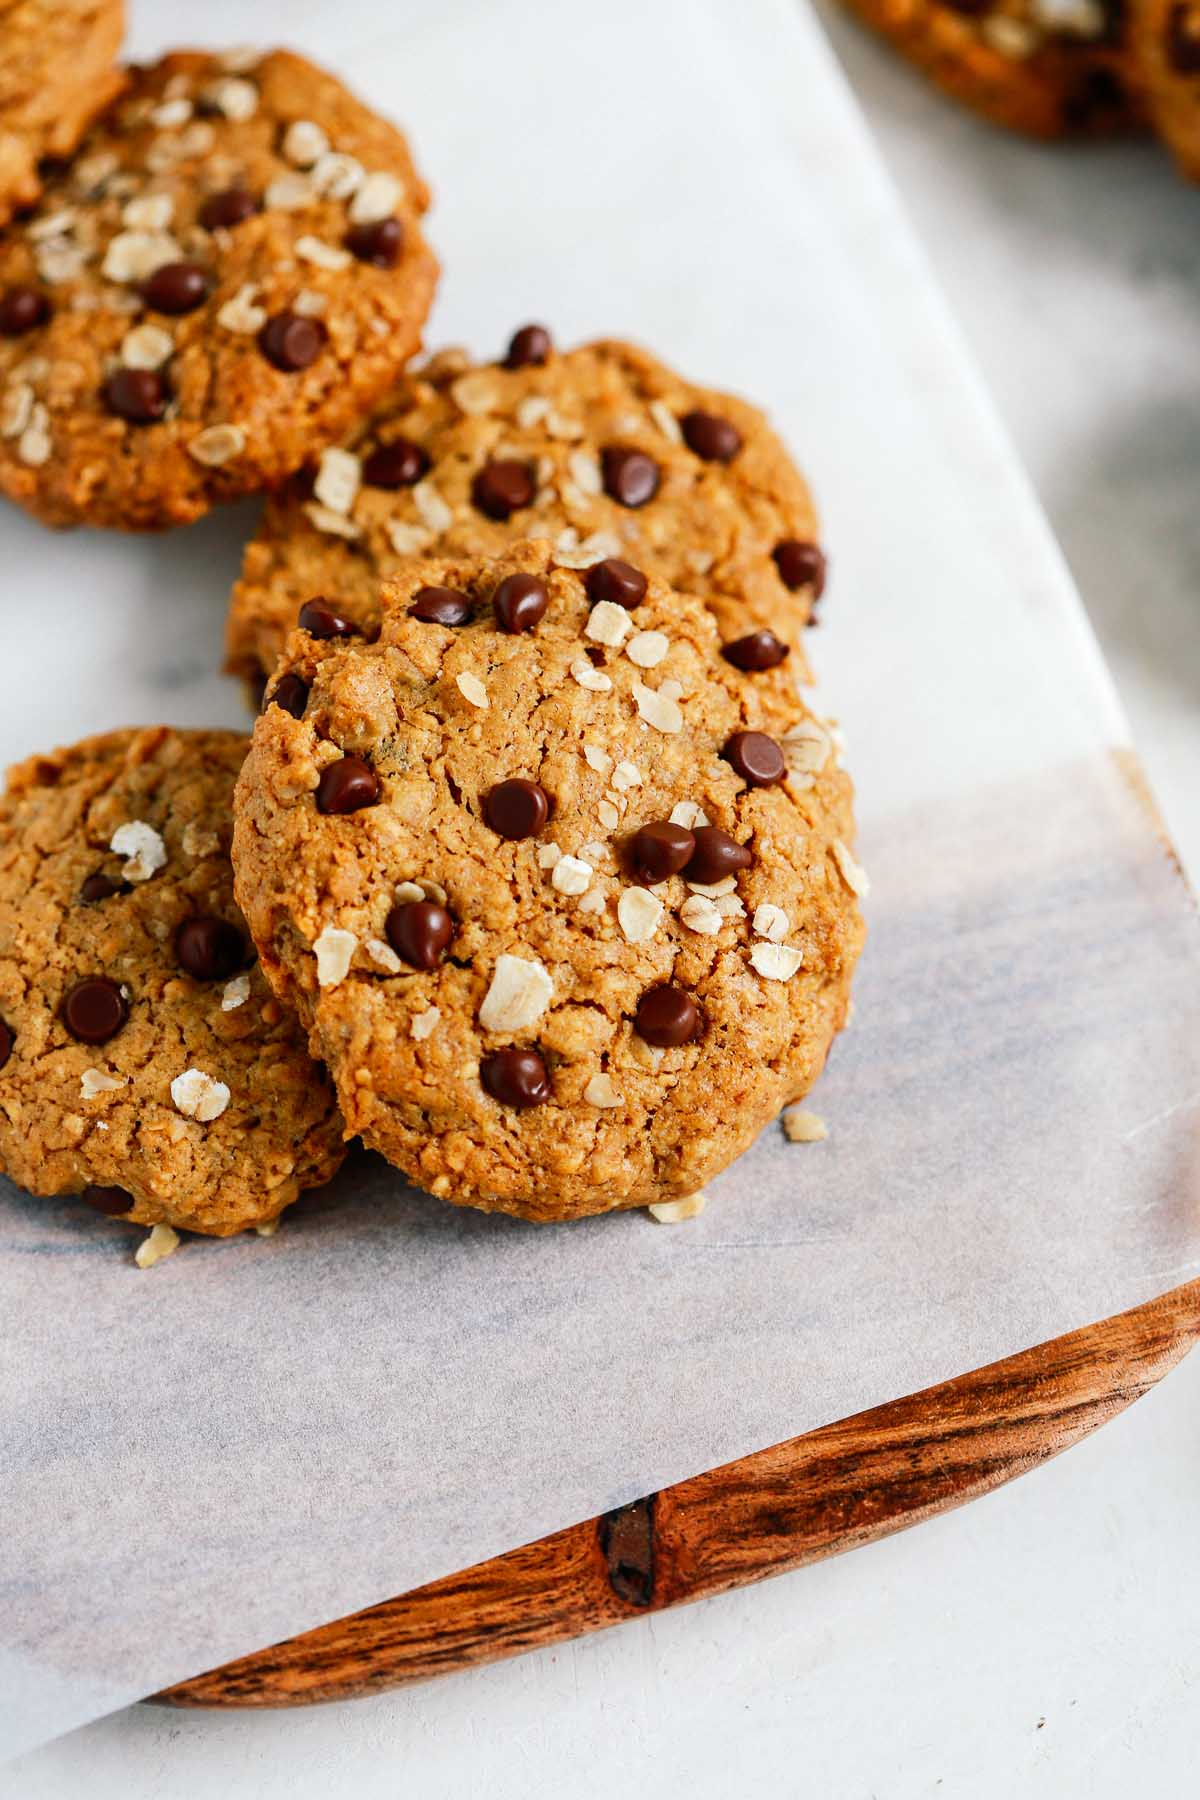 Peanut butter oatmeal cookies with chocolate chips on a cutting board